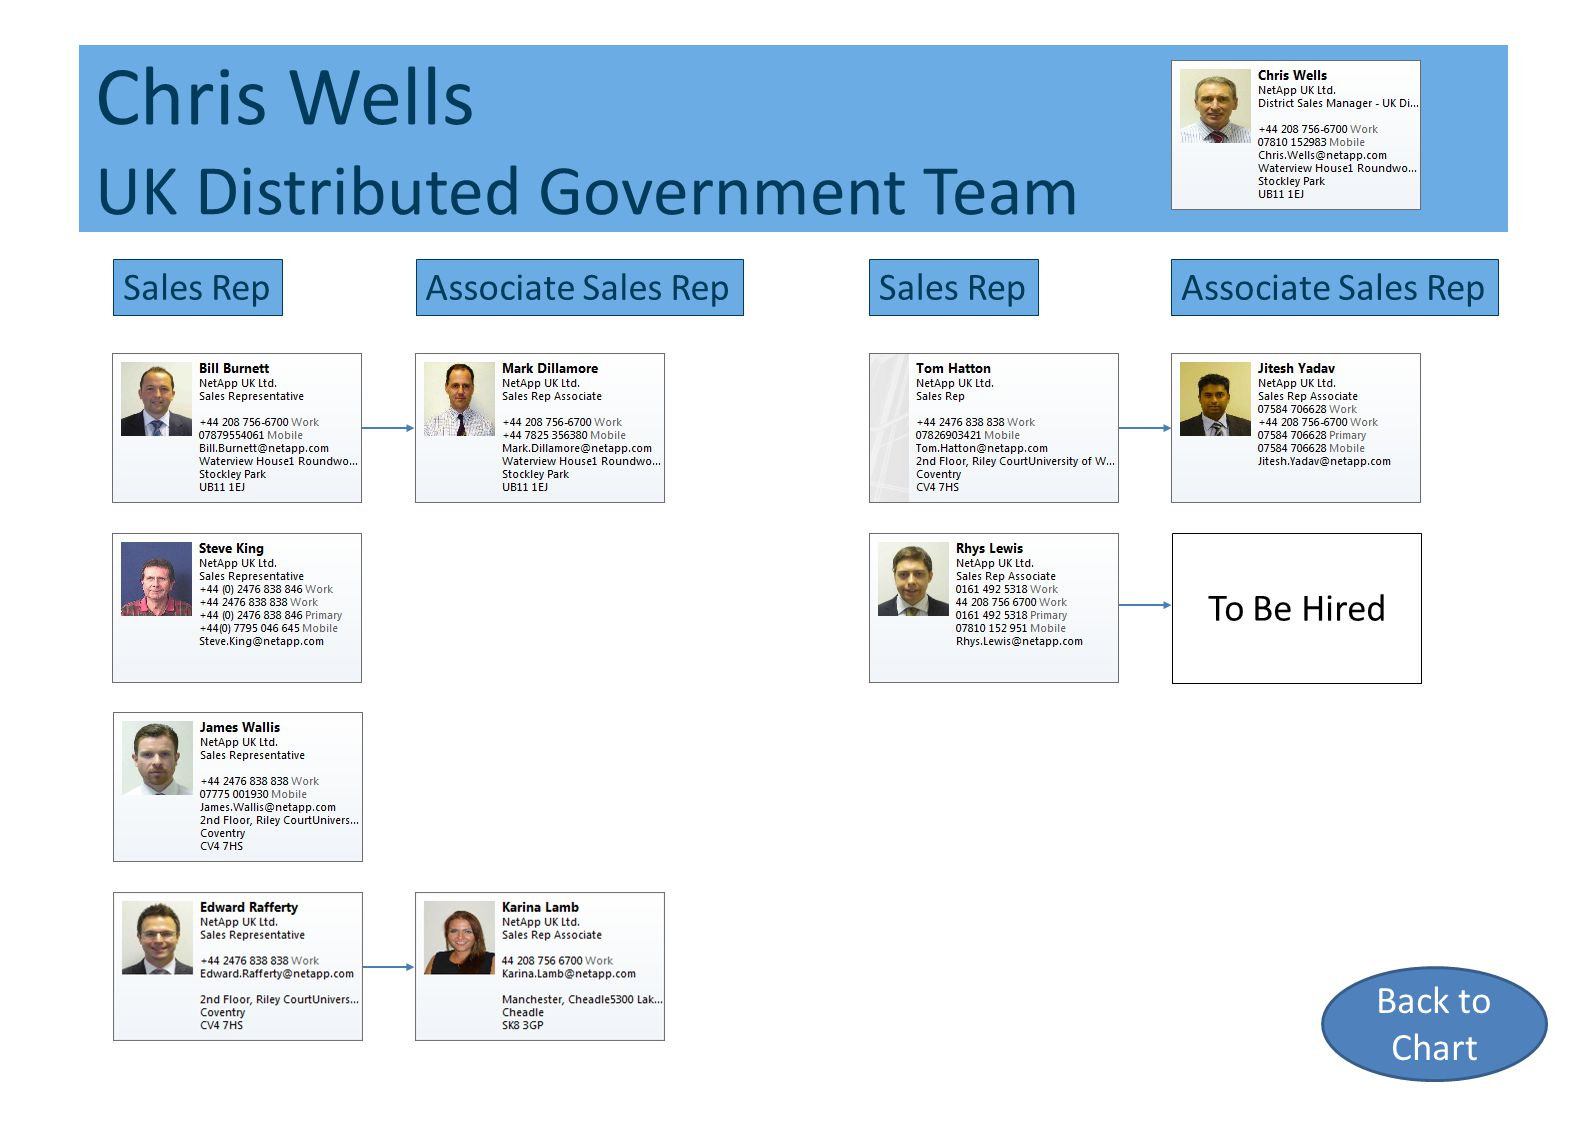 Chris Wells UK Distributed Government Team